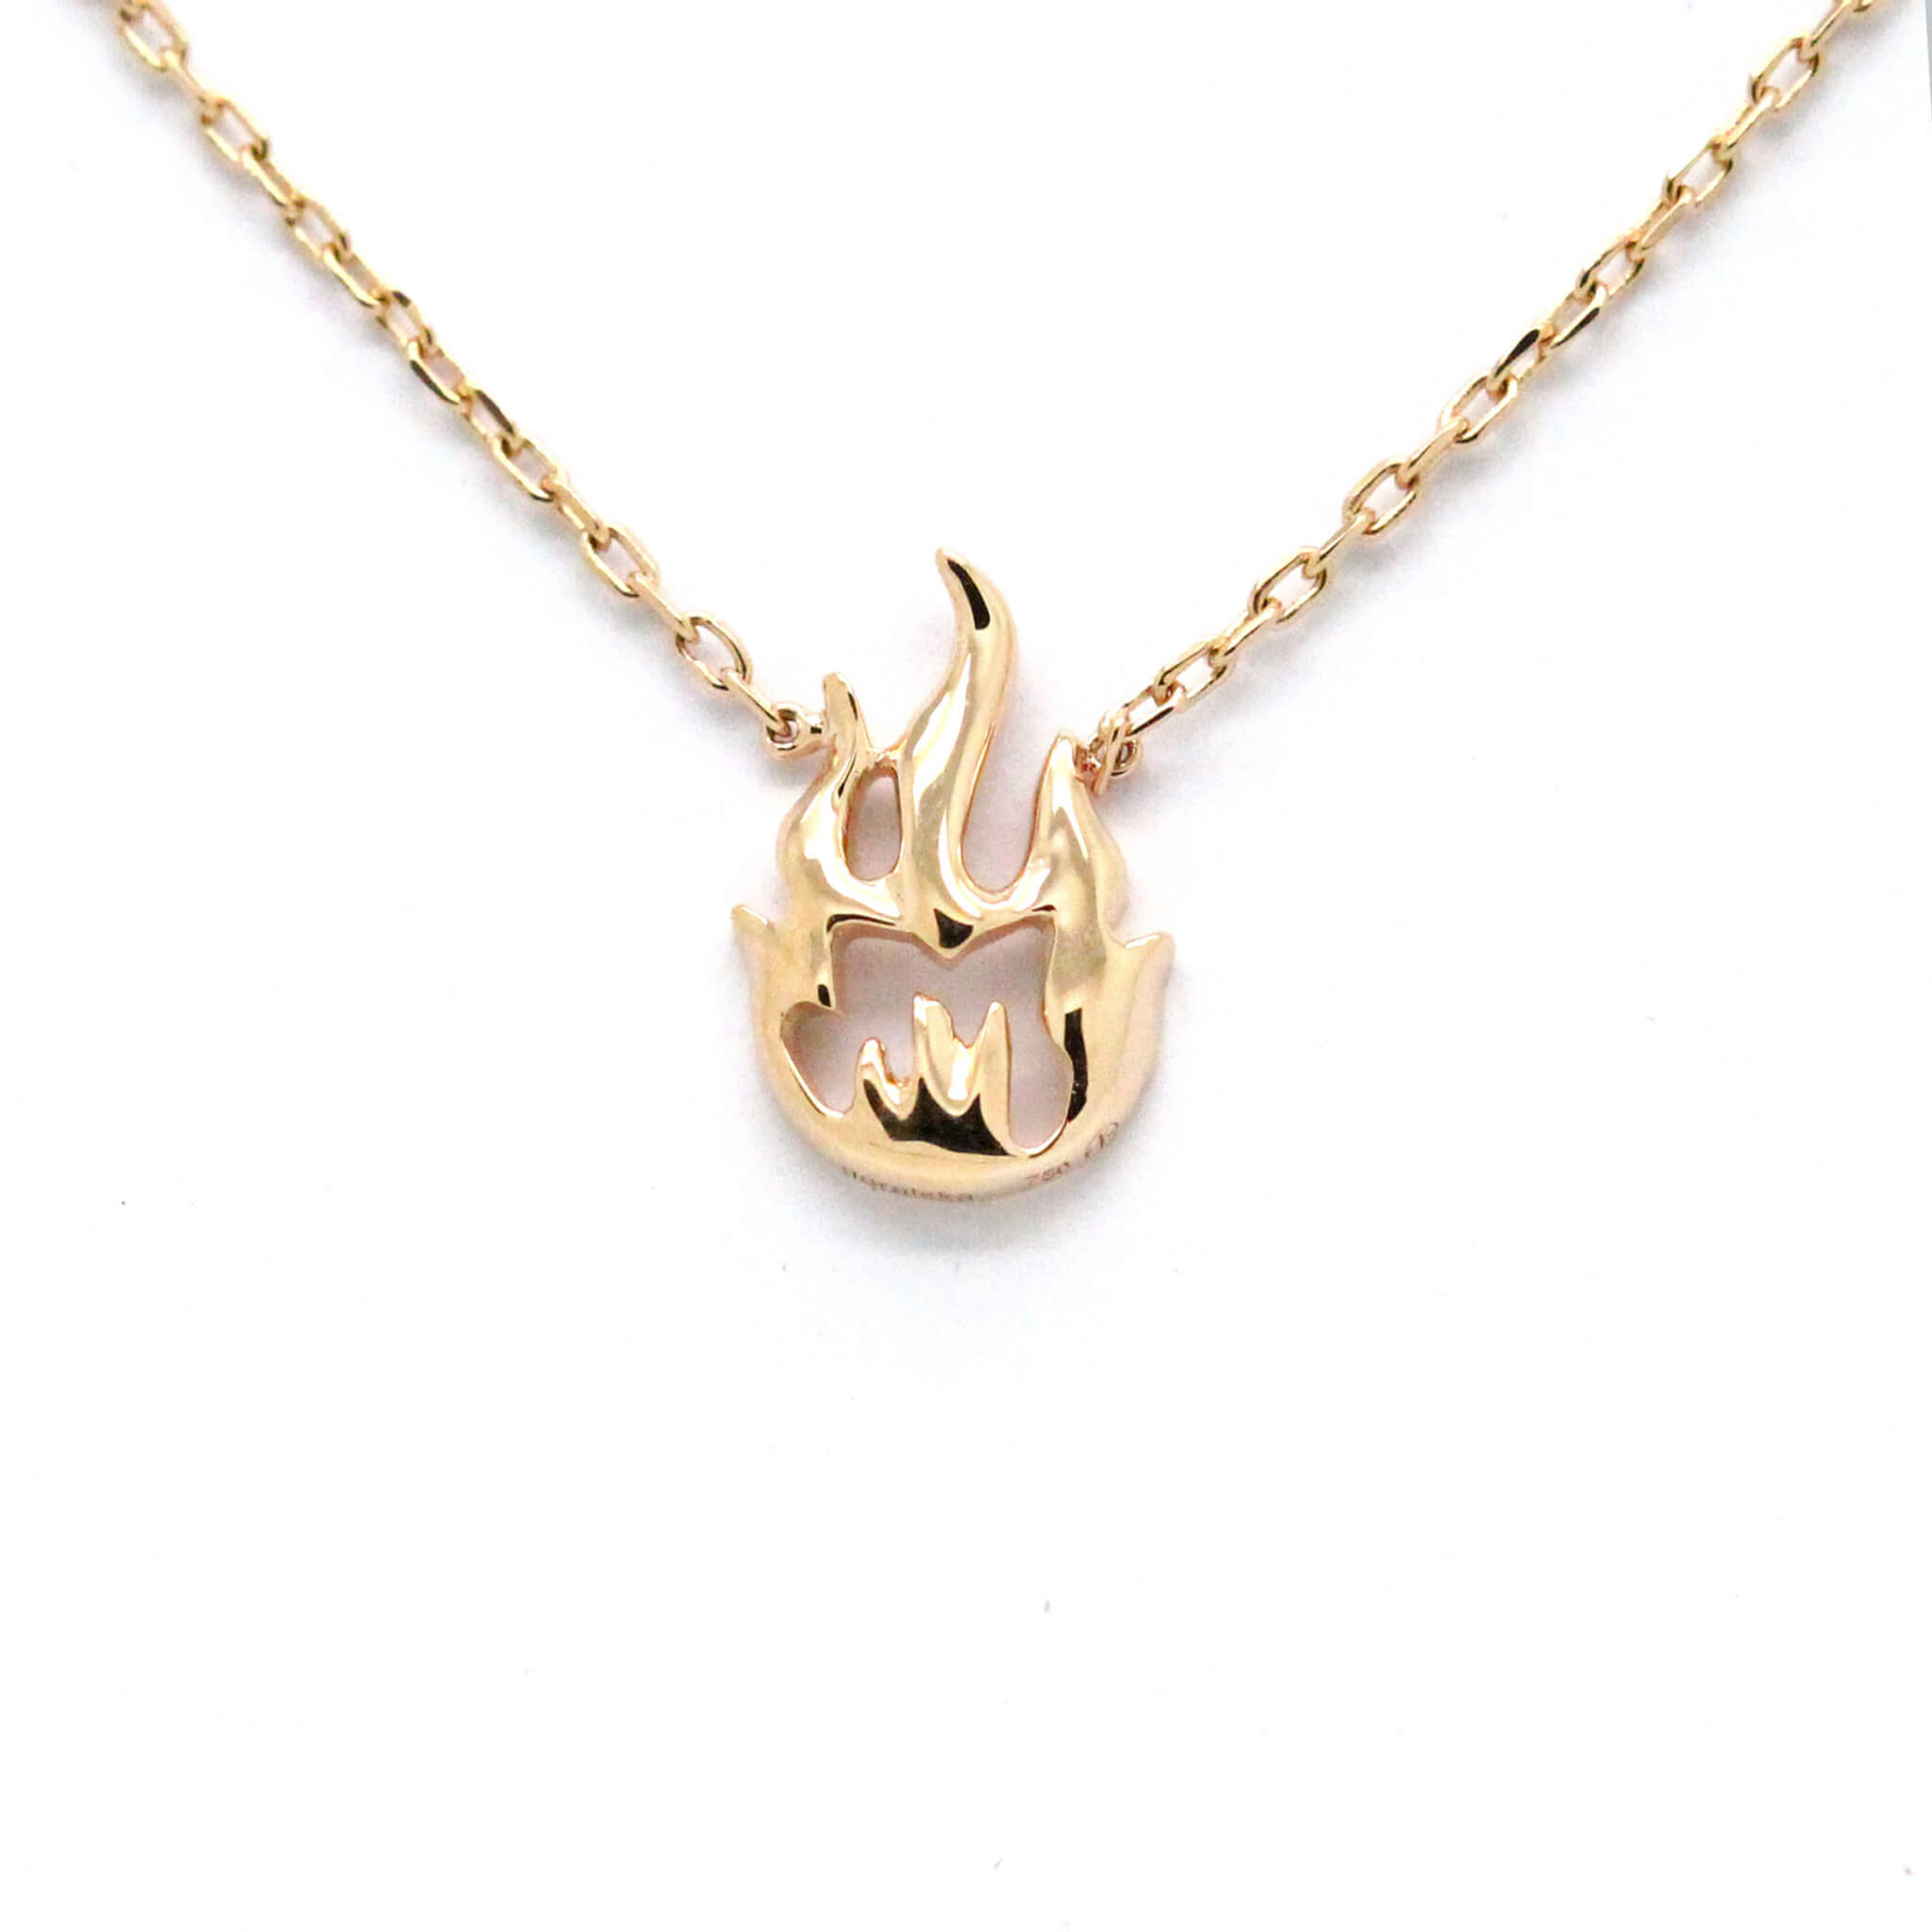 Flamme collier or jaune